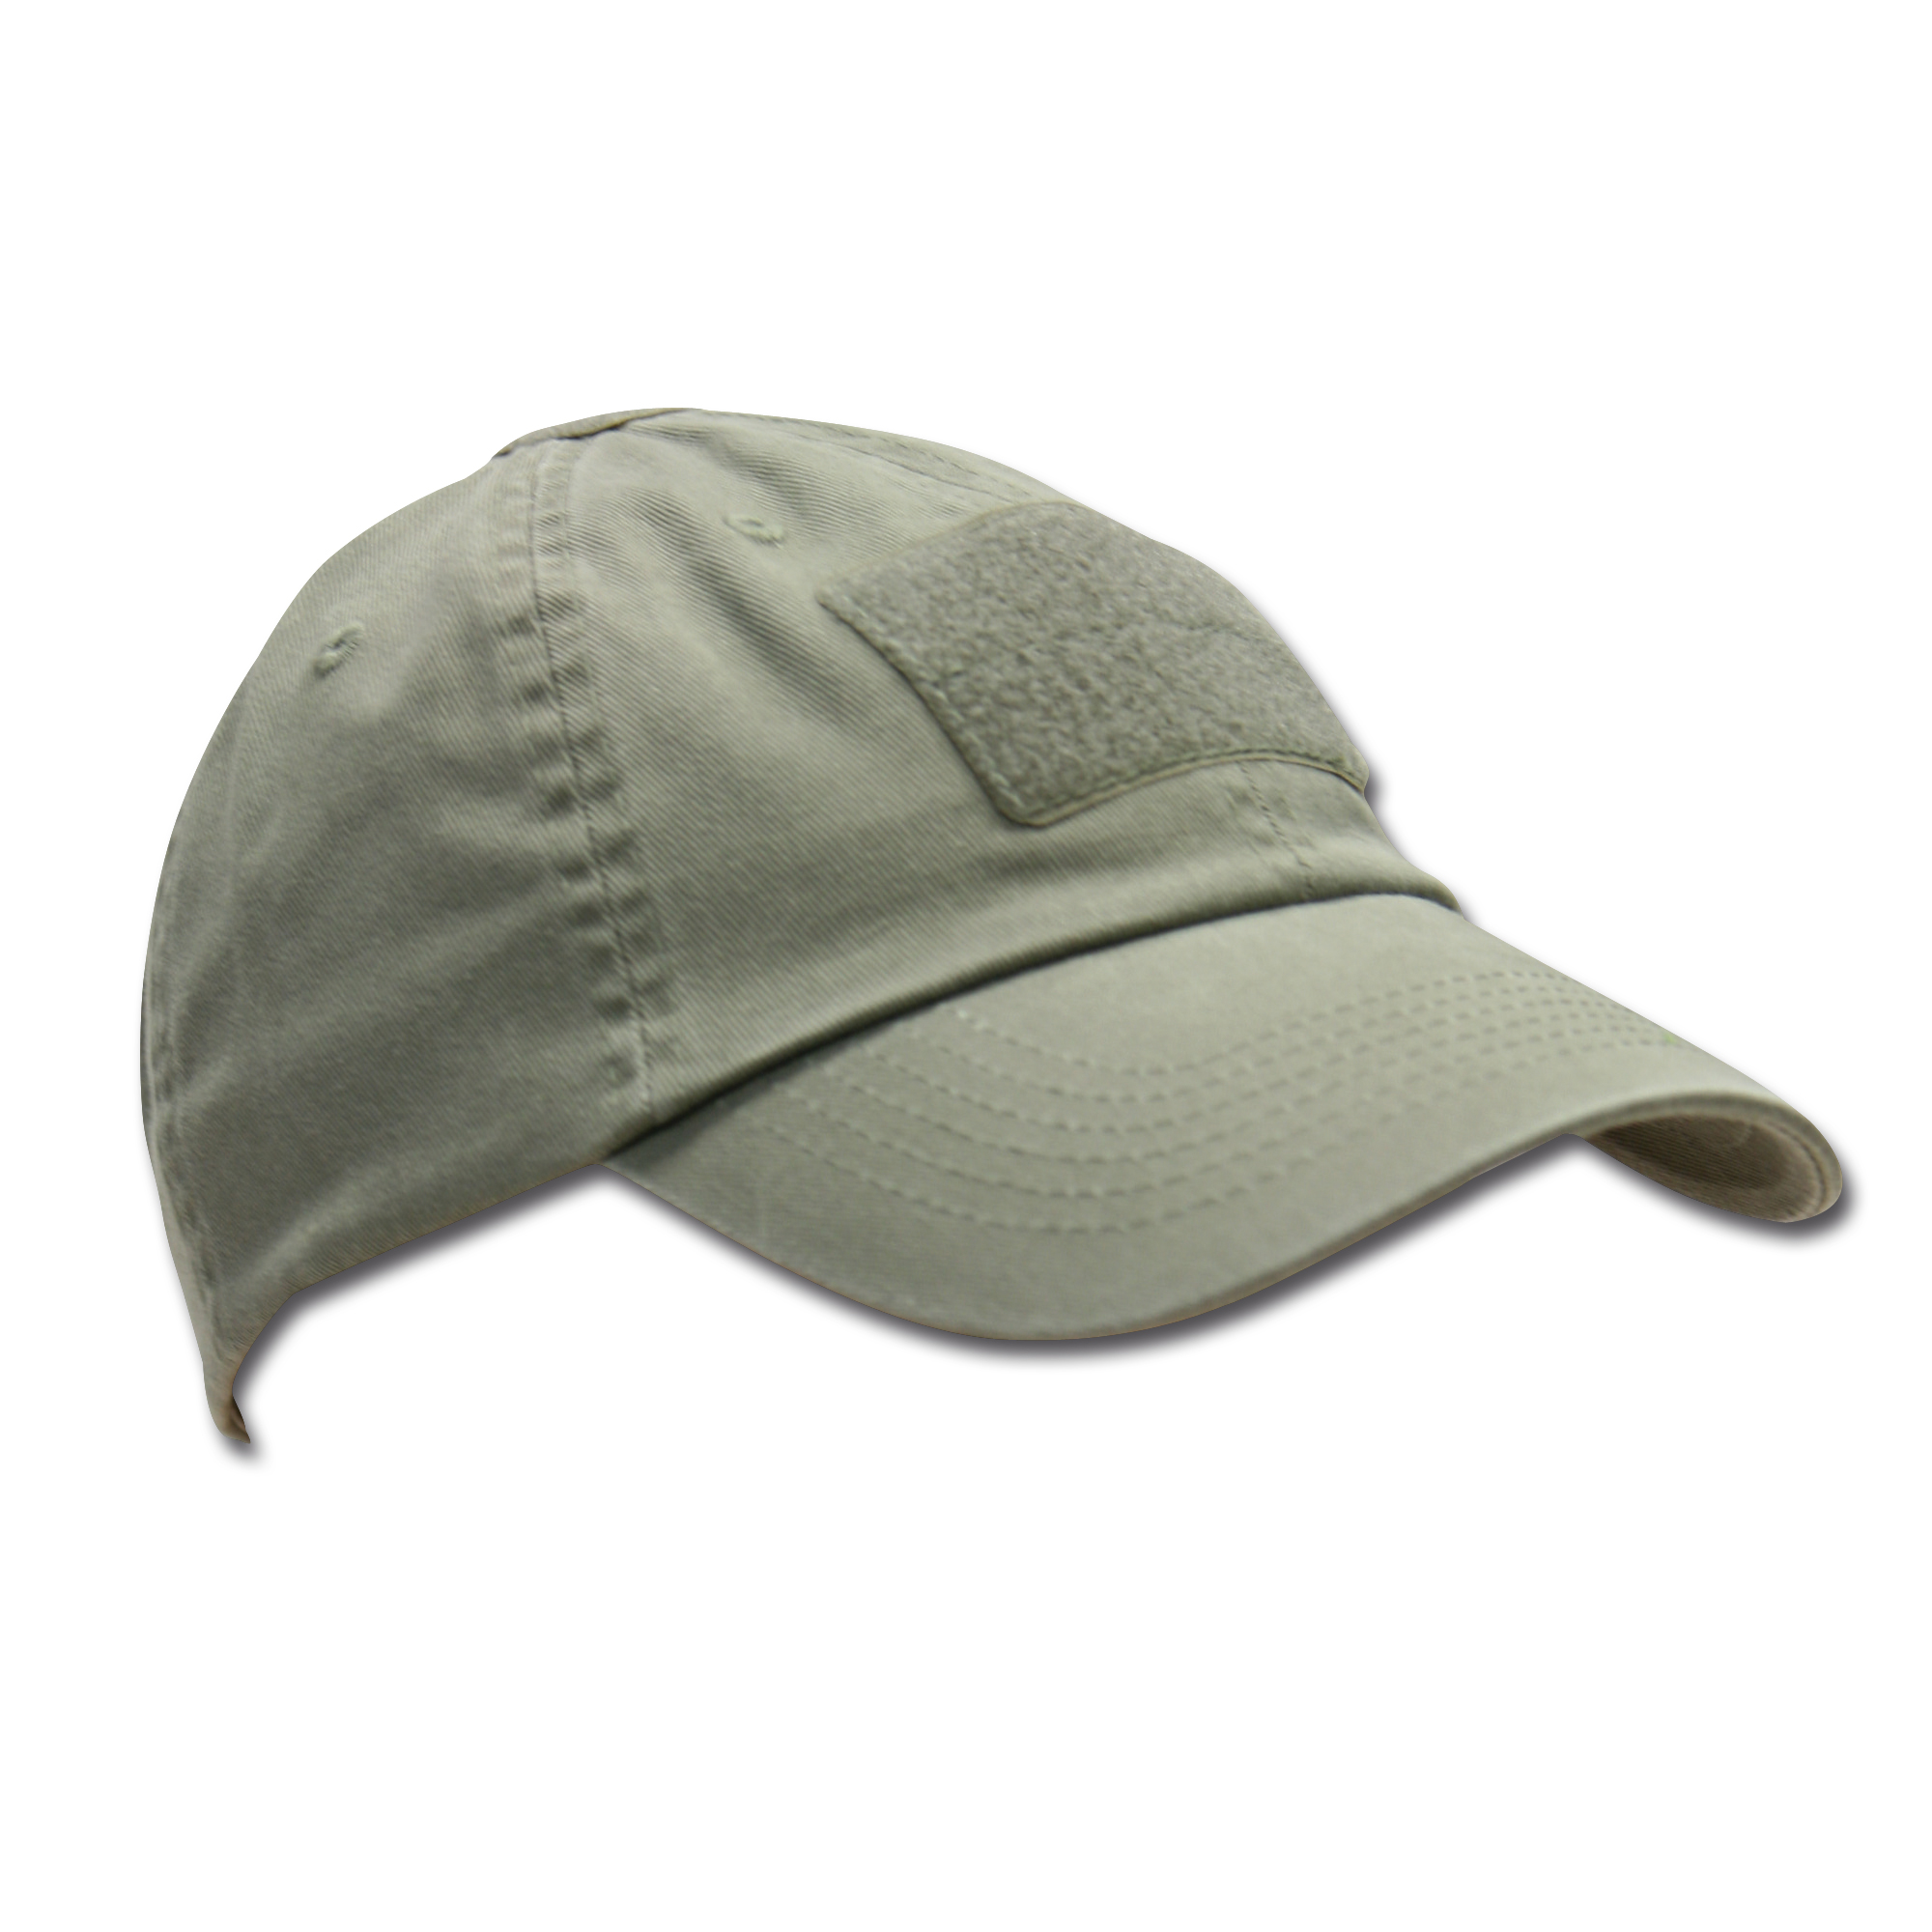 Blackhawk Contractor Cap foliage